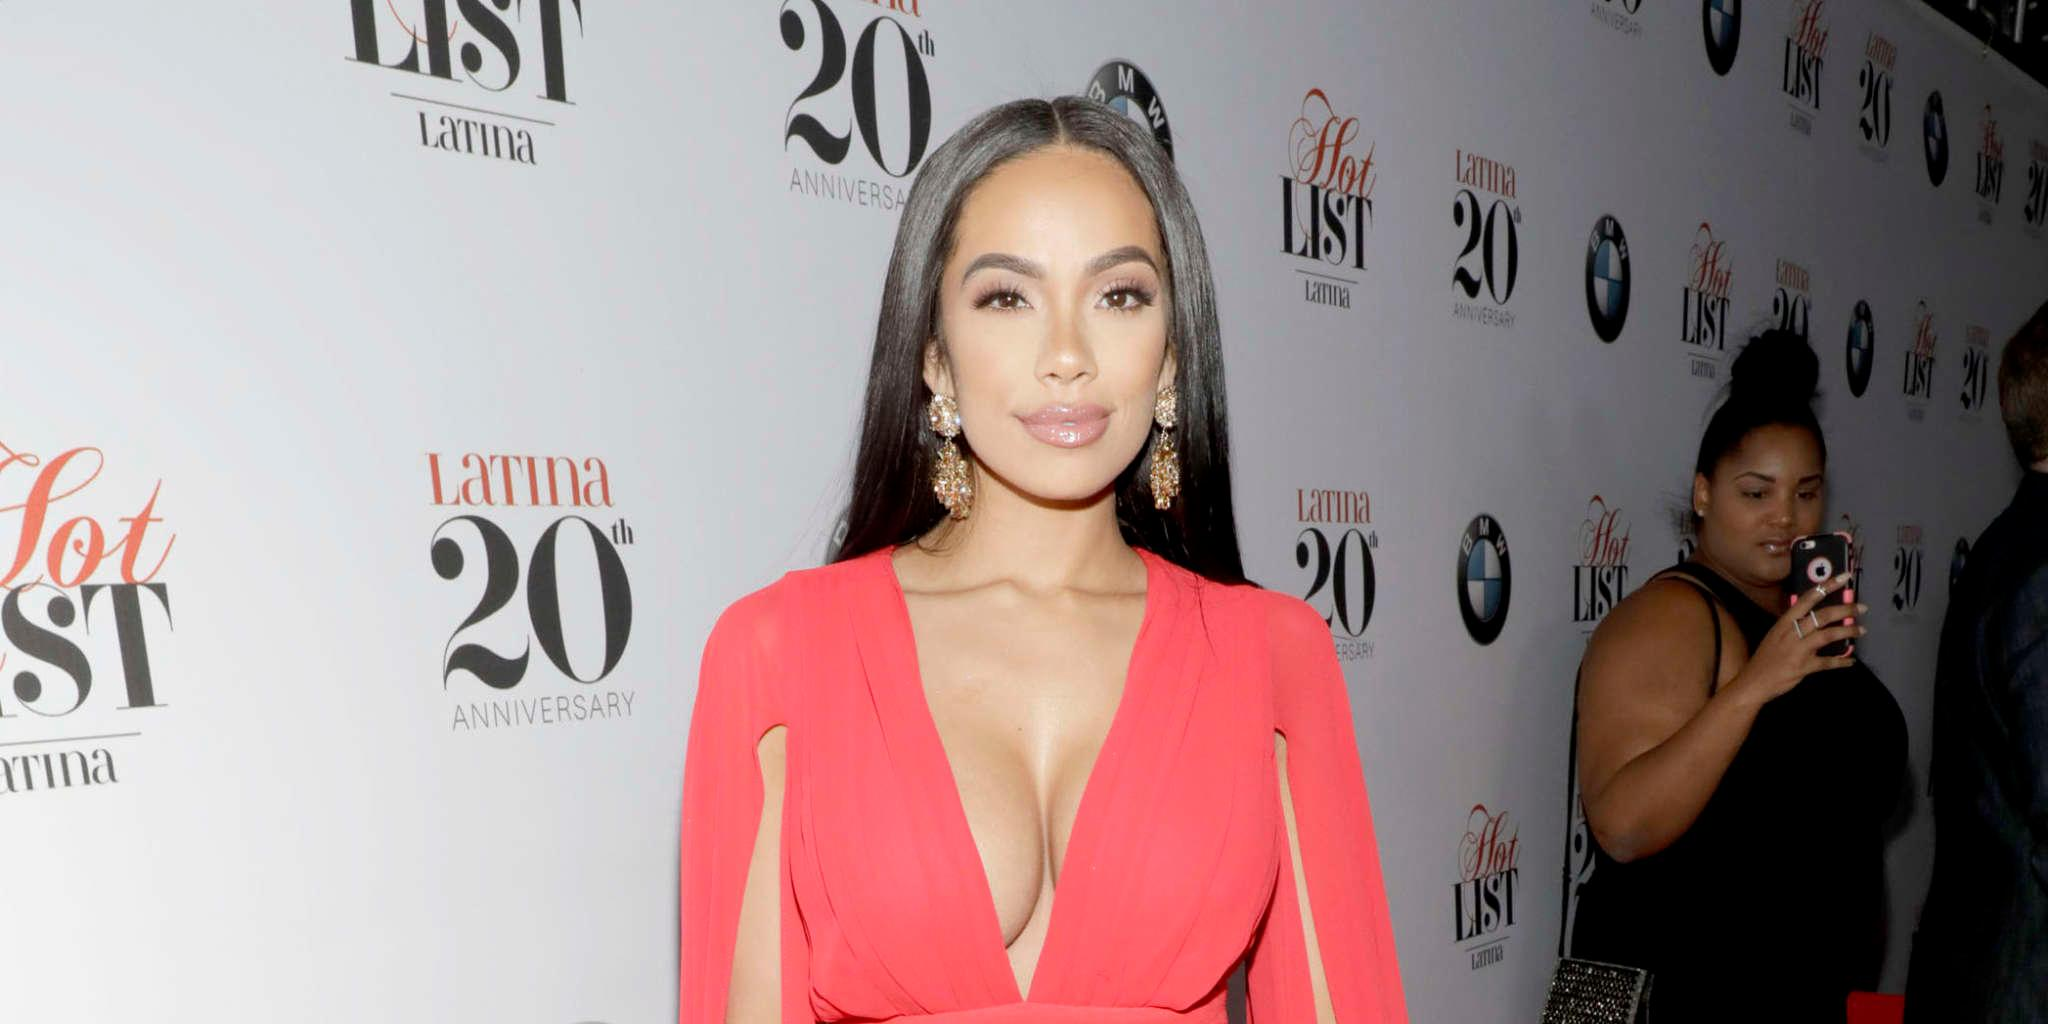 Erica Mena's Secret For An Amazing Hair Impresses Fans - See Her Video